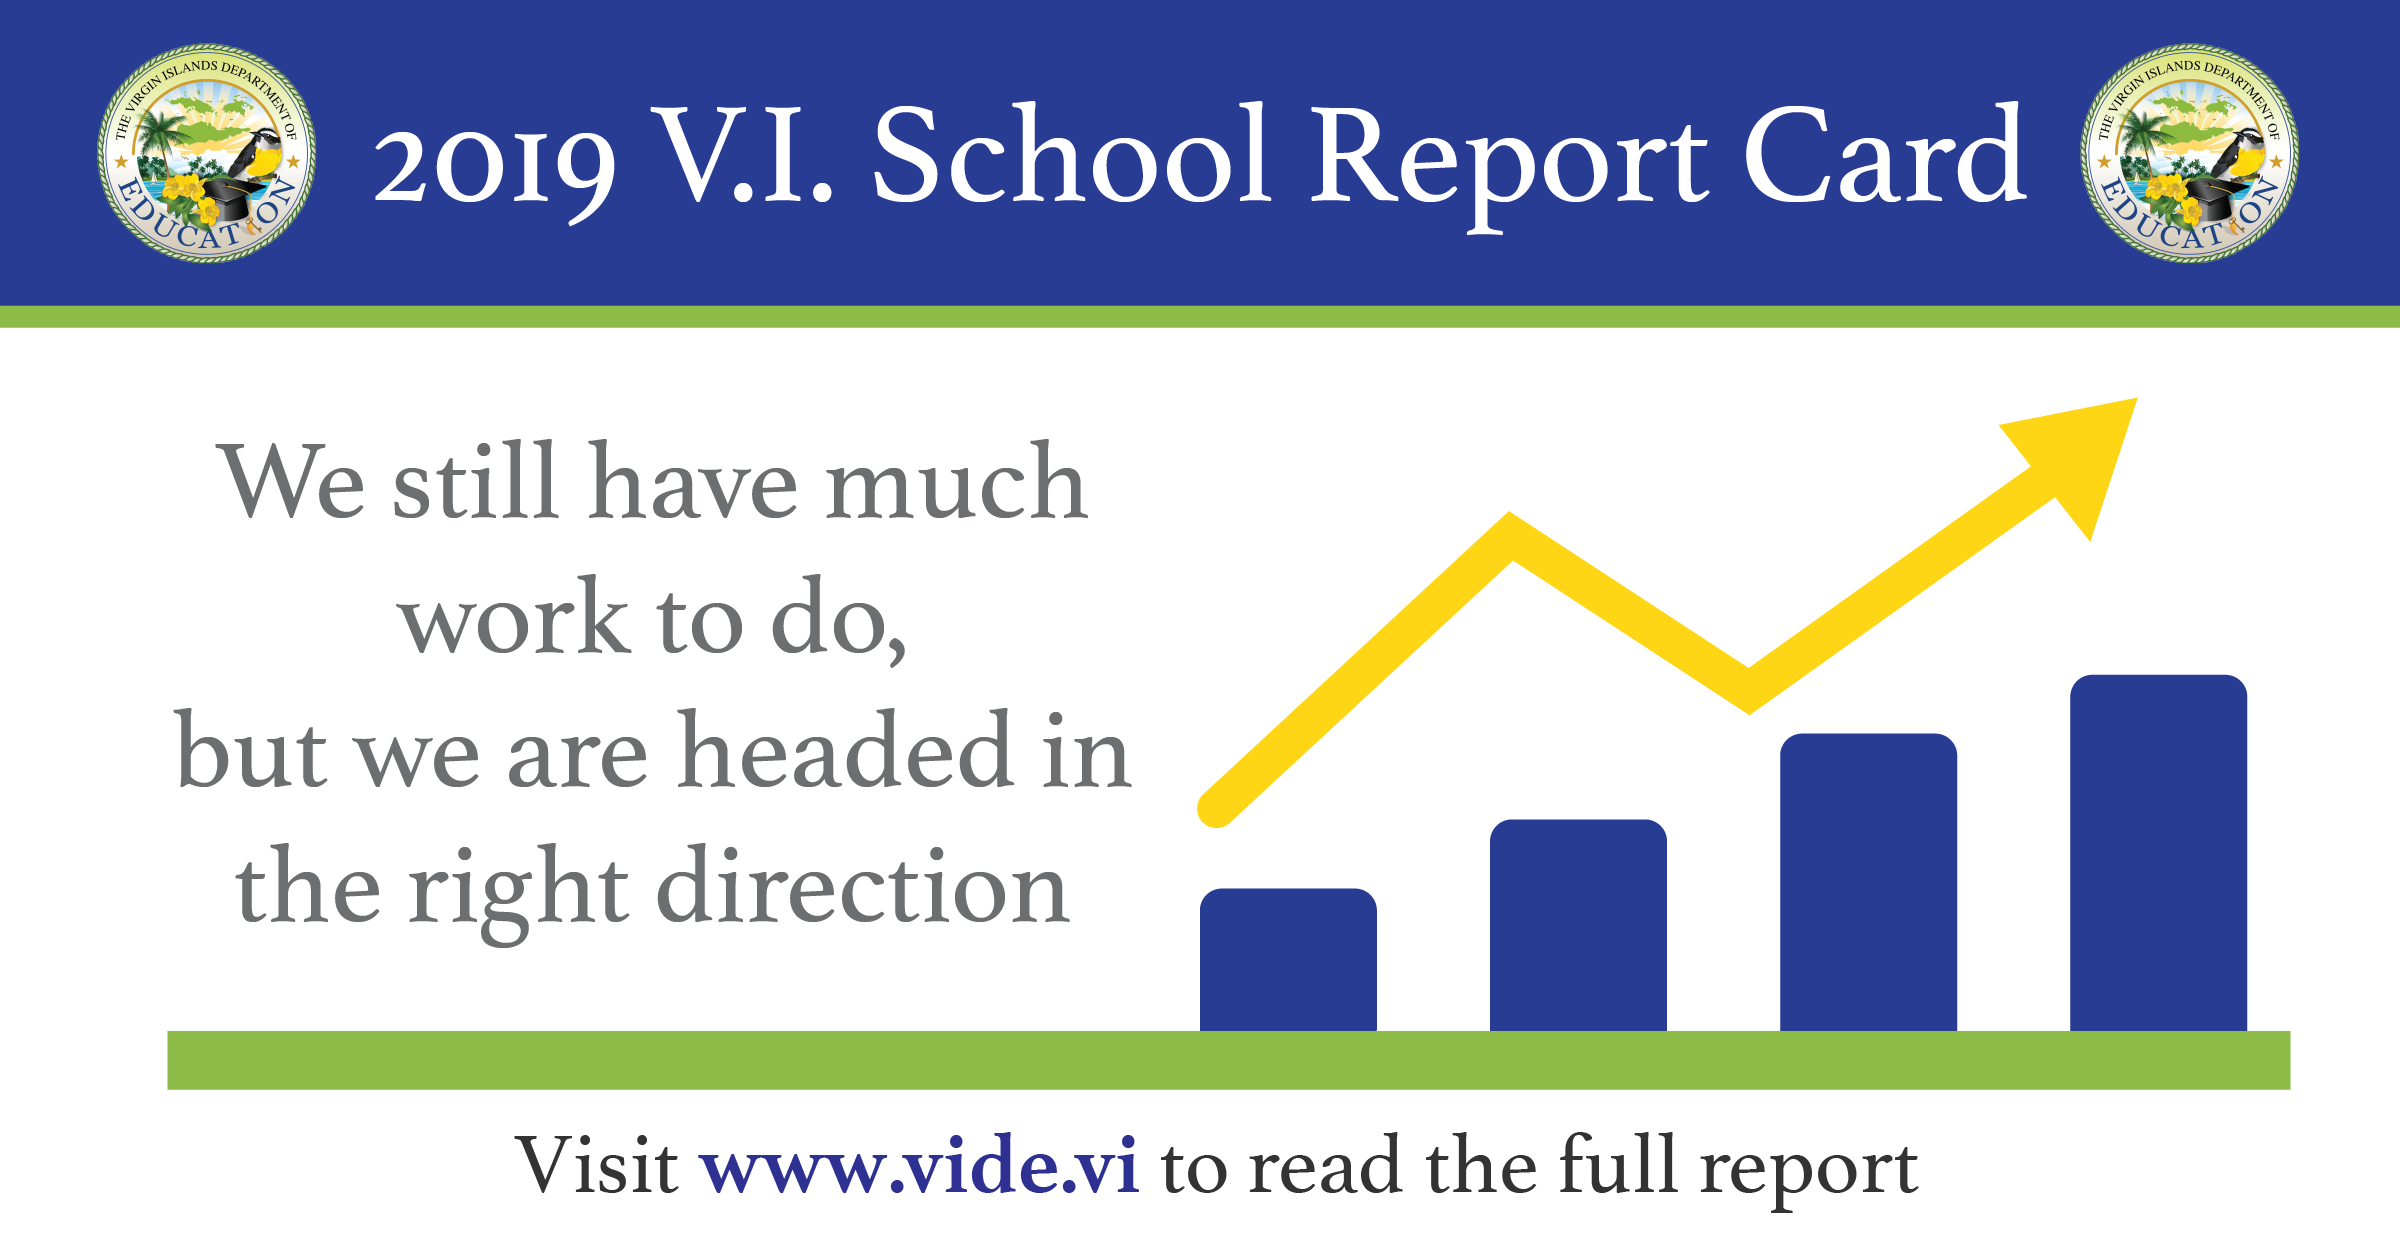 DOE VI REPORT CARD - Much to do, right direction-01-01.png